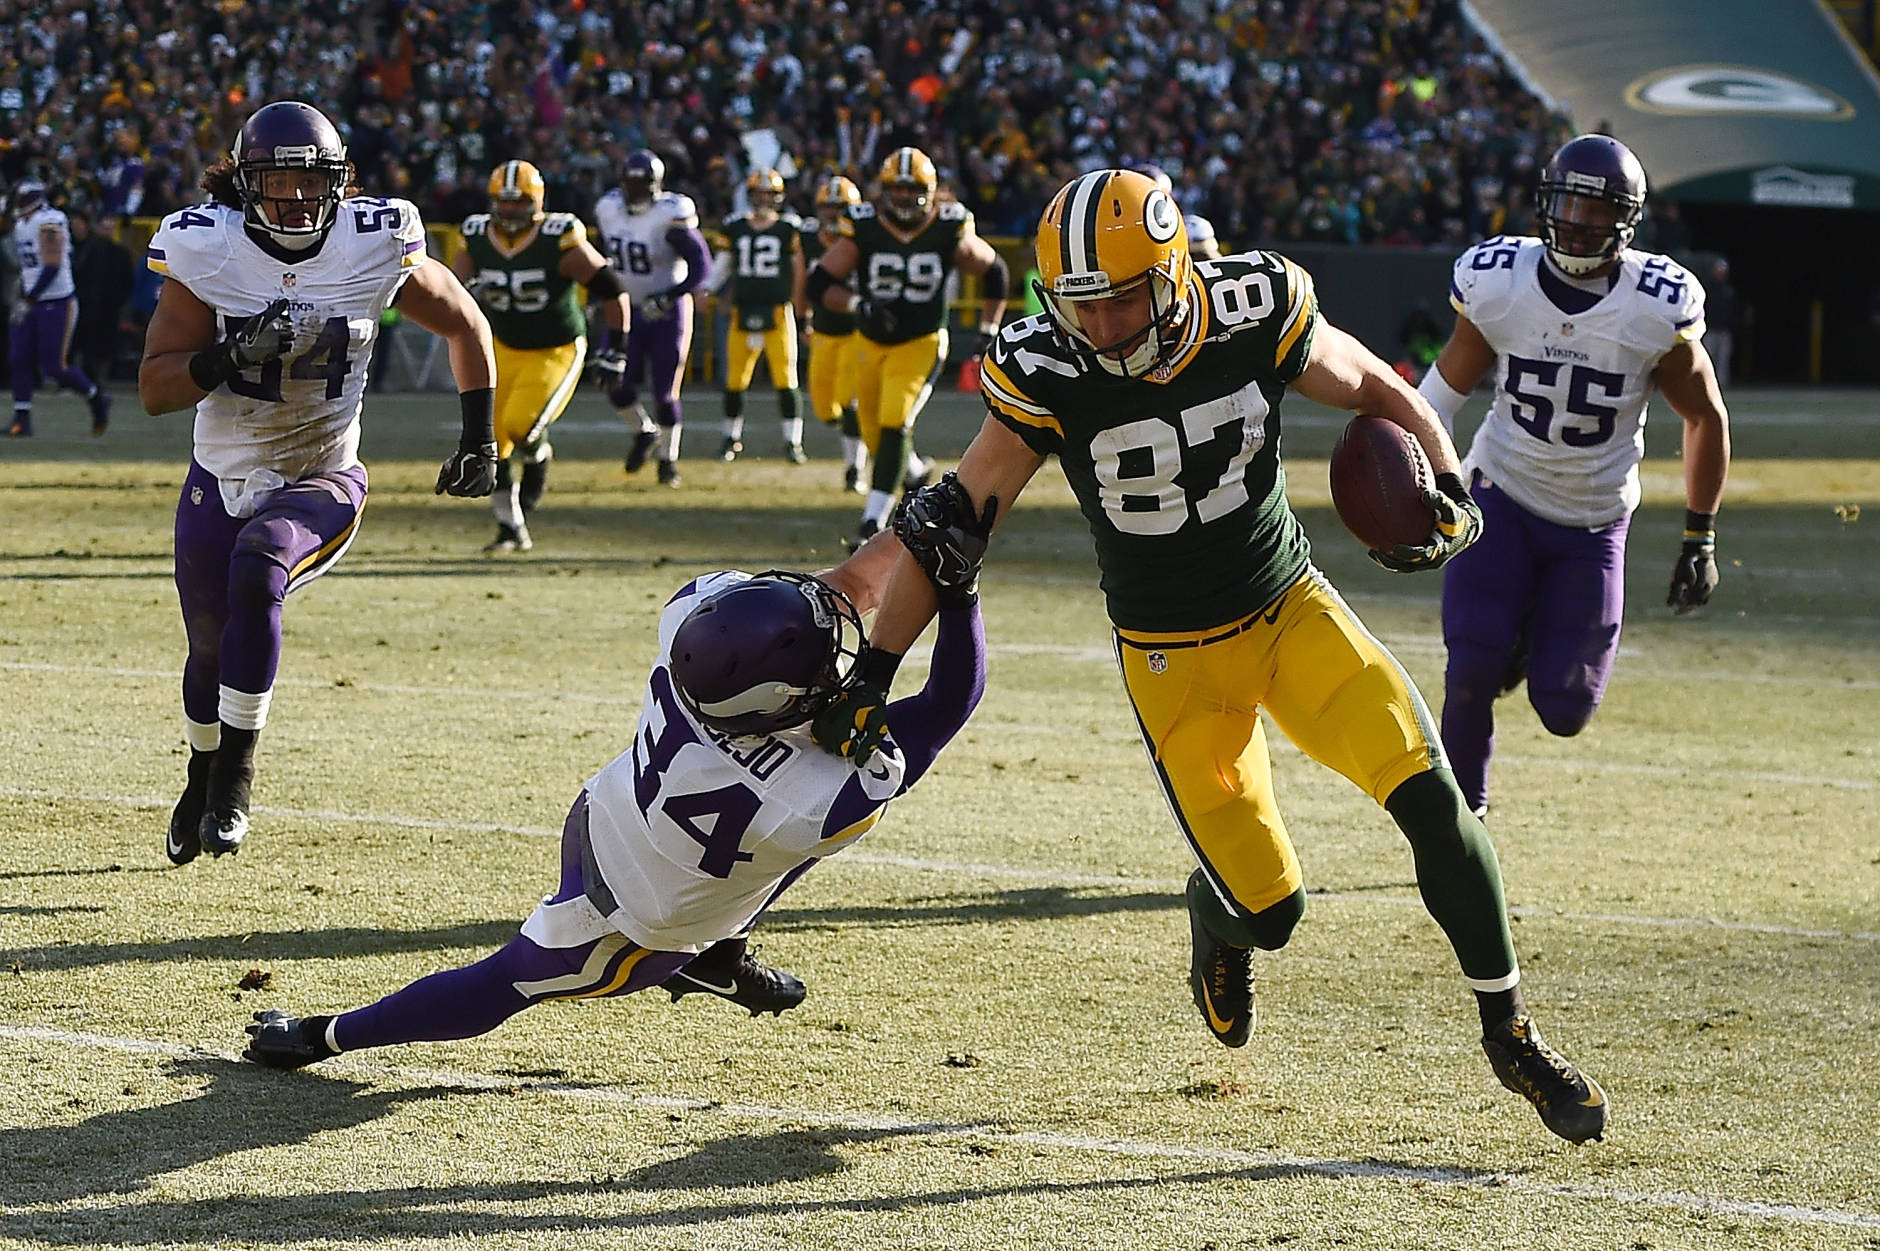 GREEN BAY, WI - DECEMBER 24:  Jordy Nelson #87 of the Green Bay Packers breaks a tackle by Andrew Sendejo #34 of the Minnesota Vikings during the second quarter of a game at Lambeau Field on December 24, 2016 in Green Bay, Wisconsin.  (Photo by Stacy Revere/Getty Images)